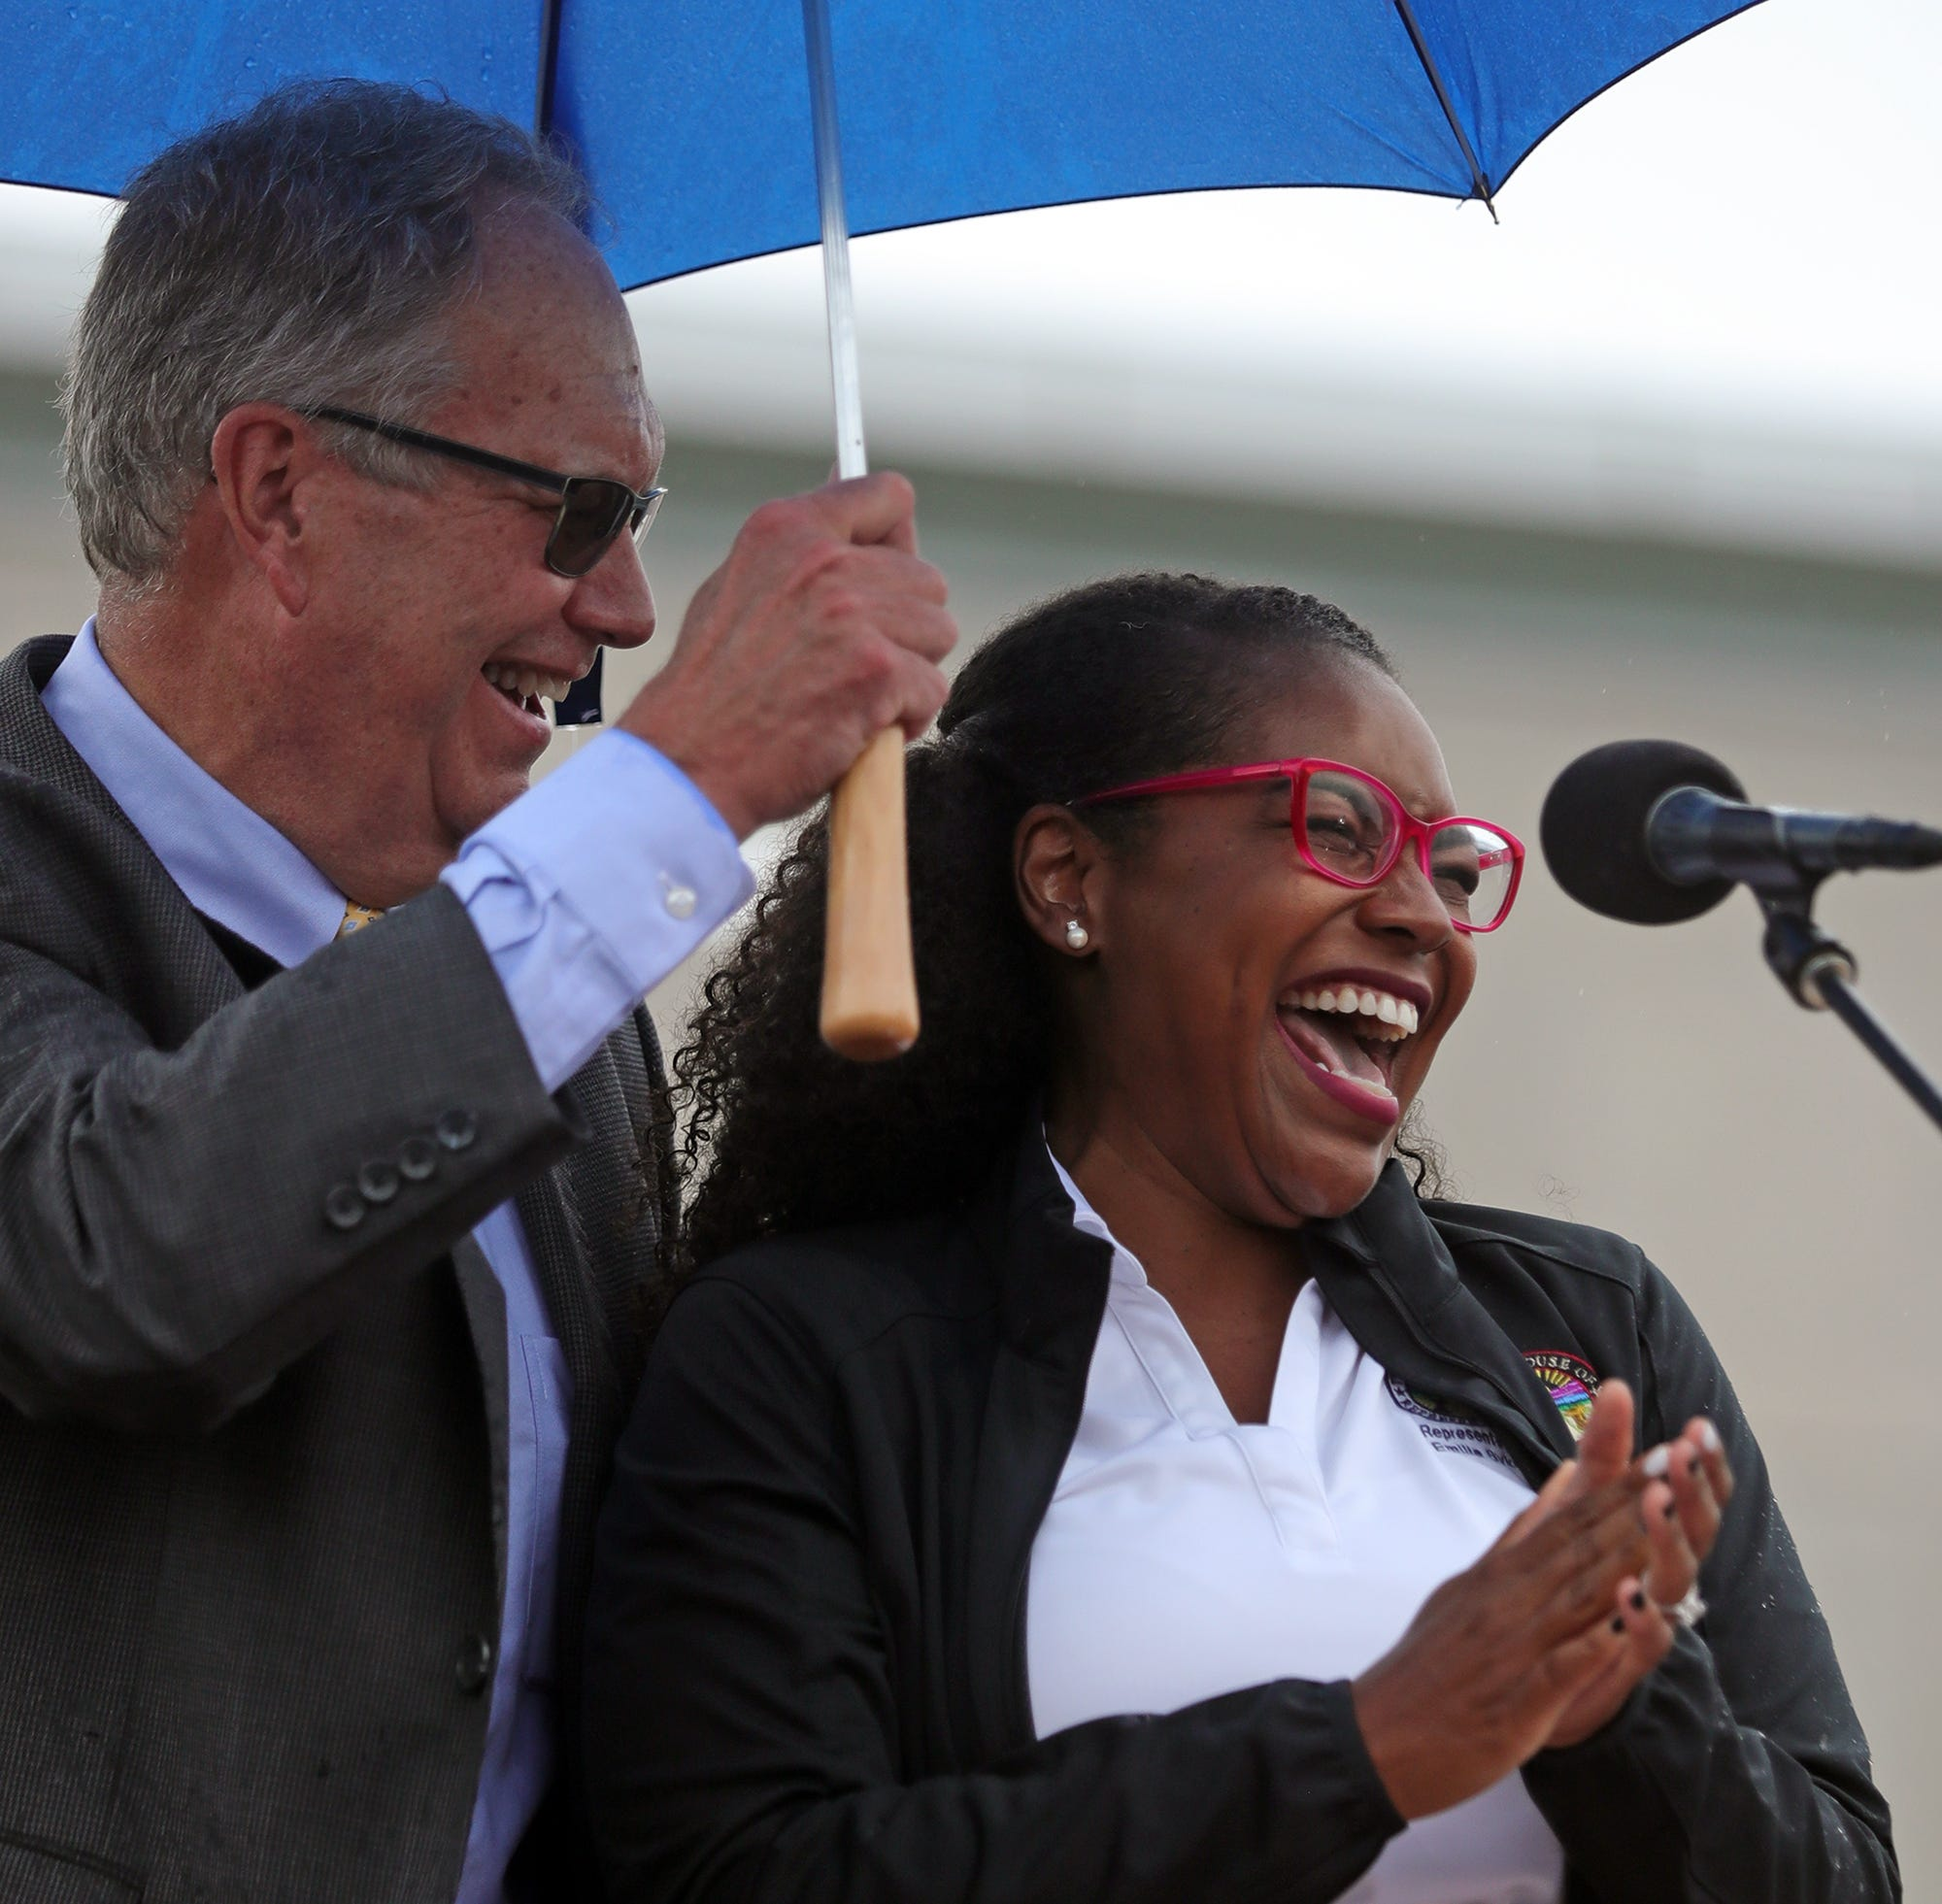 Stow Mayor John Pribonic shares a laugh with Rep. Emilia Sykes during a July 17 dedication ceremony for the John Lewis Memorial Bridge in Stow.